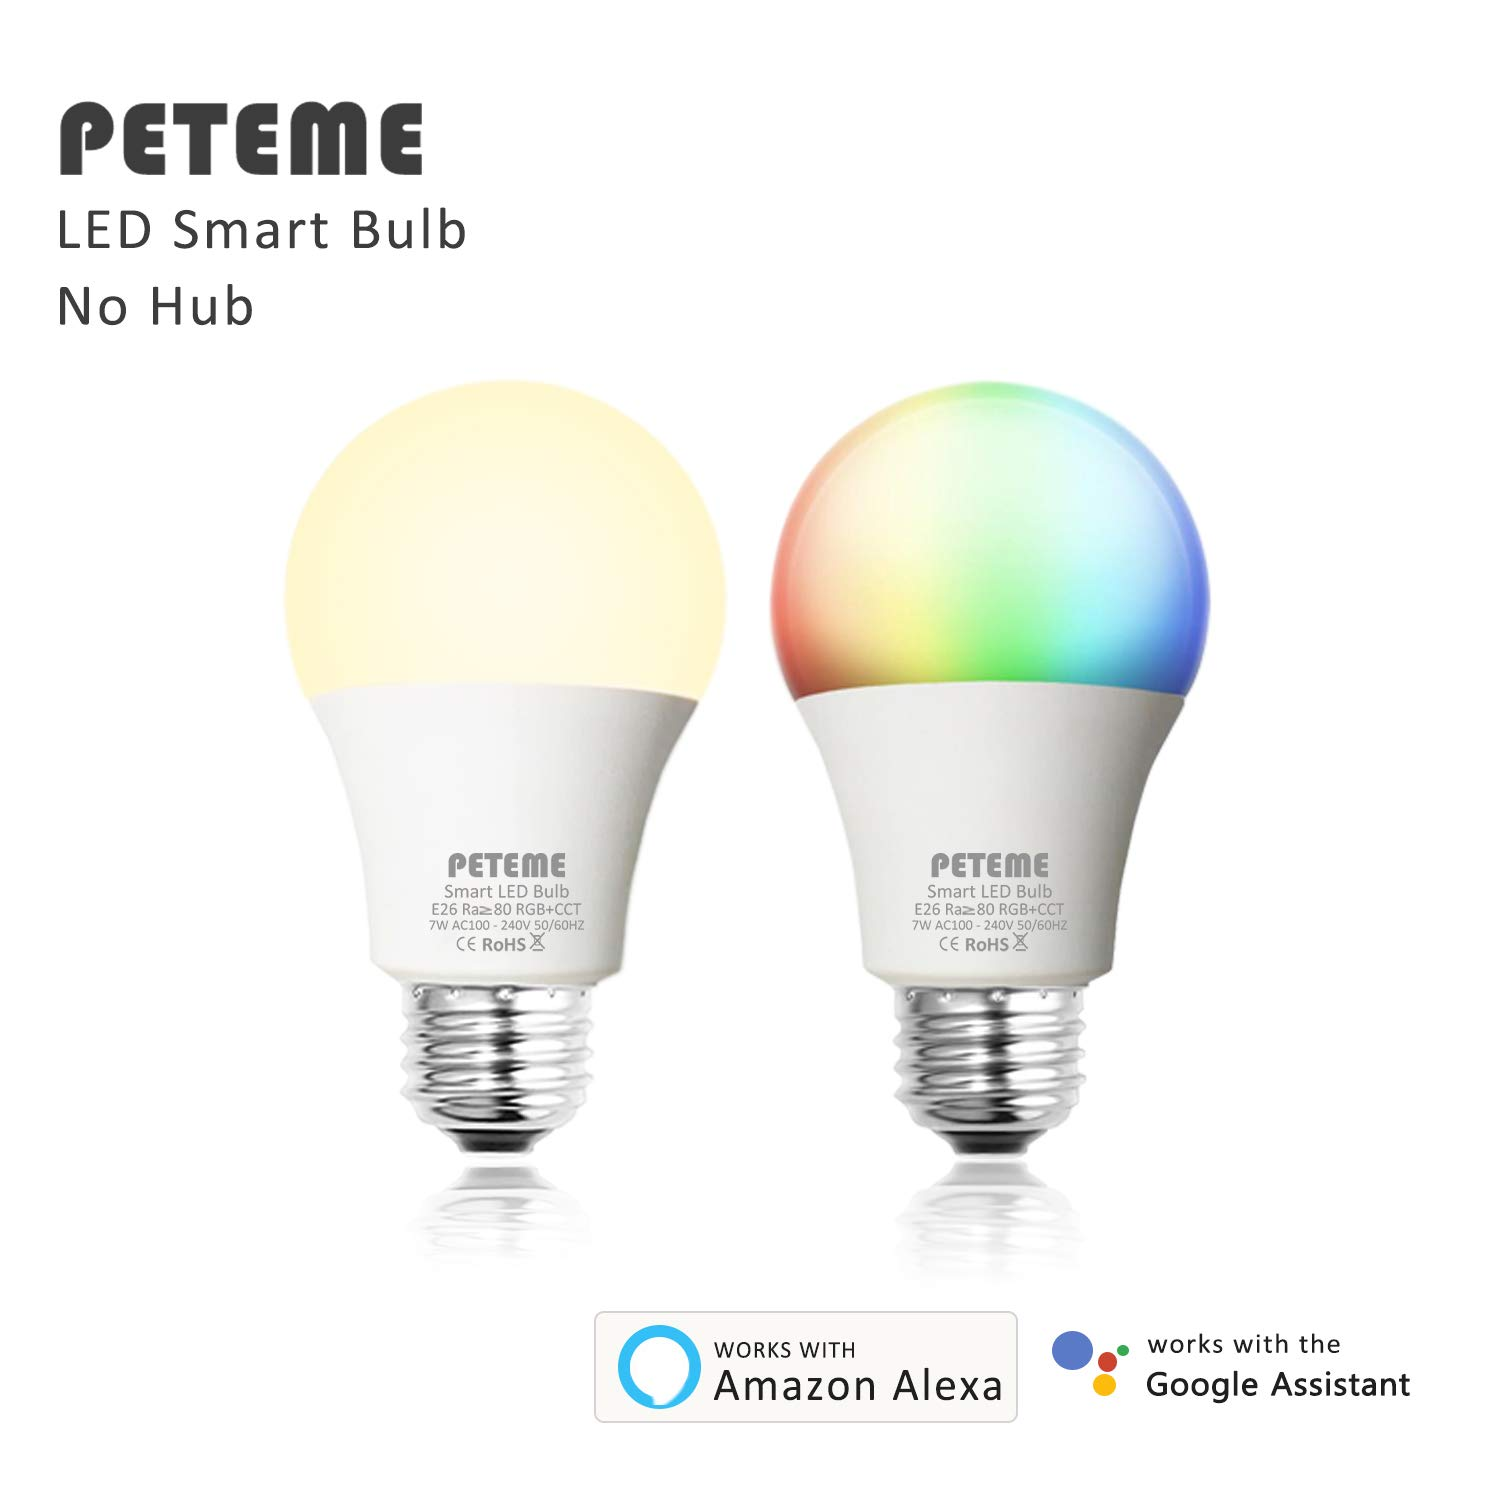 Smart LED Light Bulb E26 WiFi Multicolor Light Bulb Work with Siri,Alexa, Echo, Google Home and IFTTT (No Hub Required), Peteme A19 60W Equivalent RGB Color Changing Bulb (2 Pack) by Peteme (Image #7)